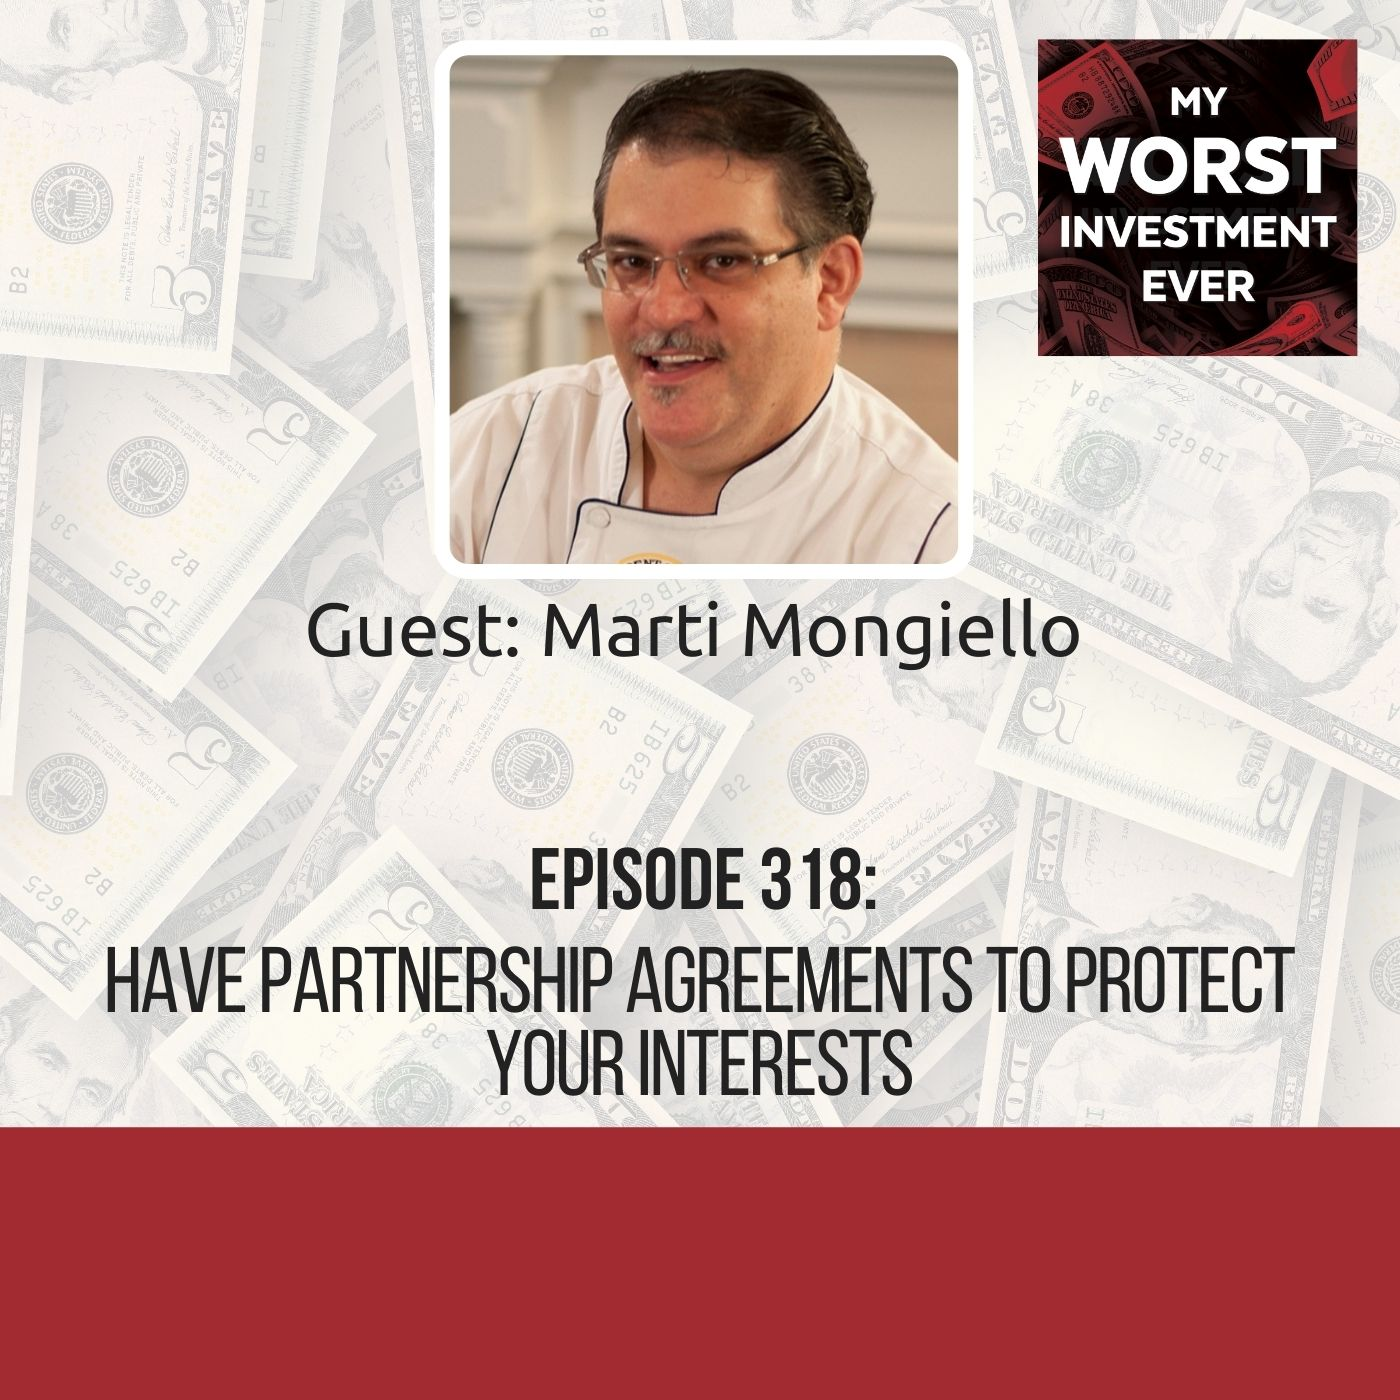 Marti Mongiello – Have Partnership Agreements to Protect Your Interests